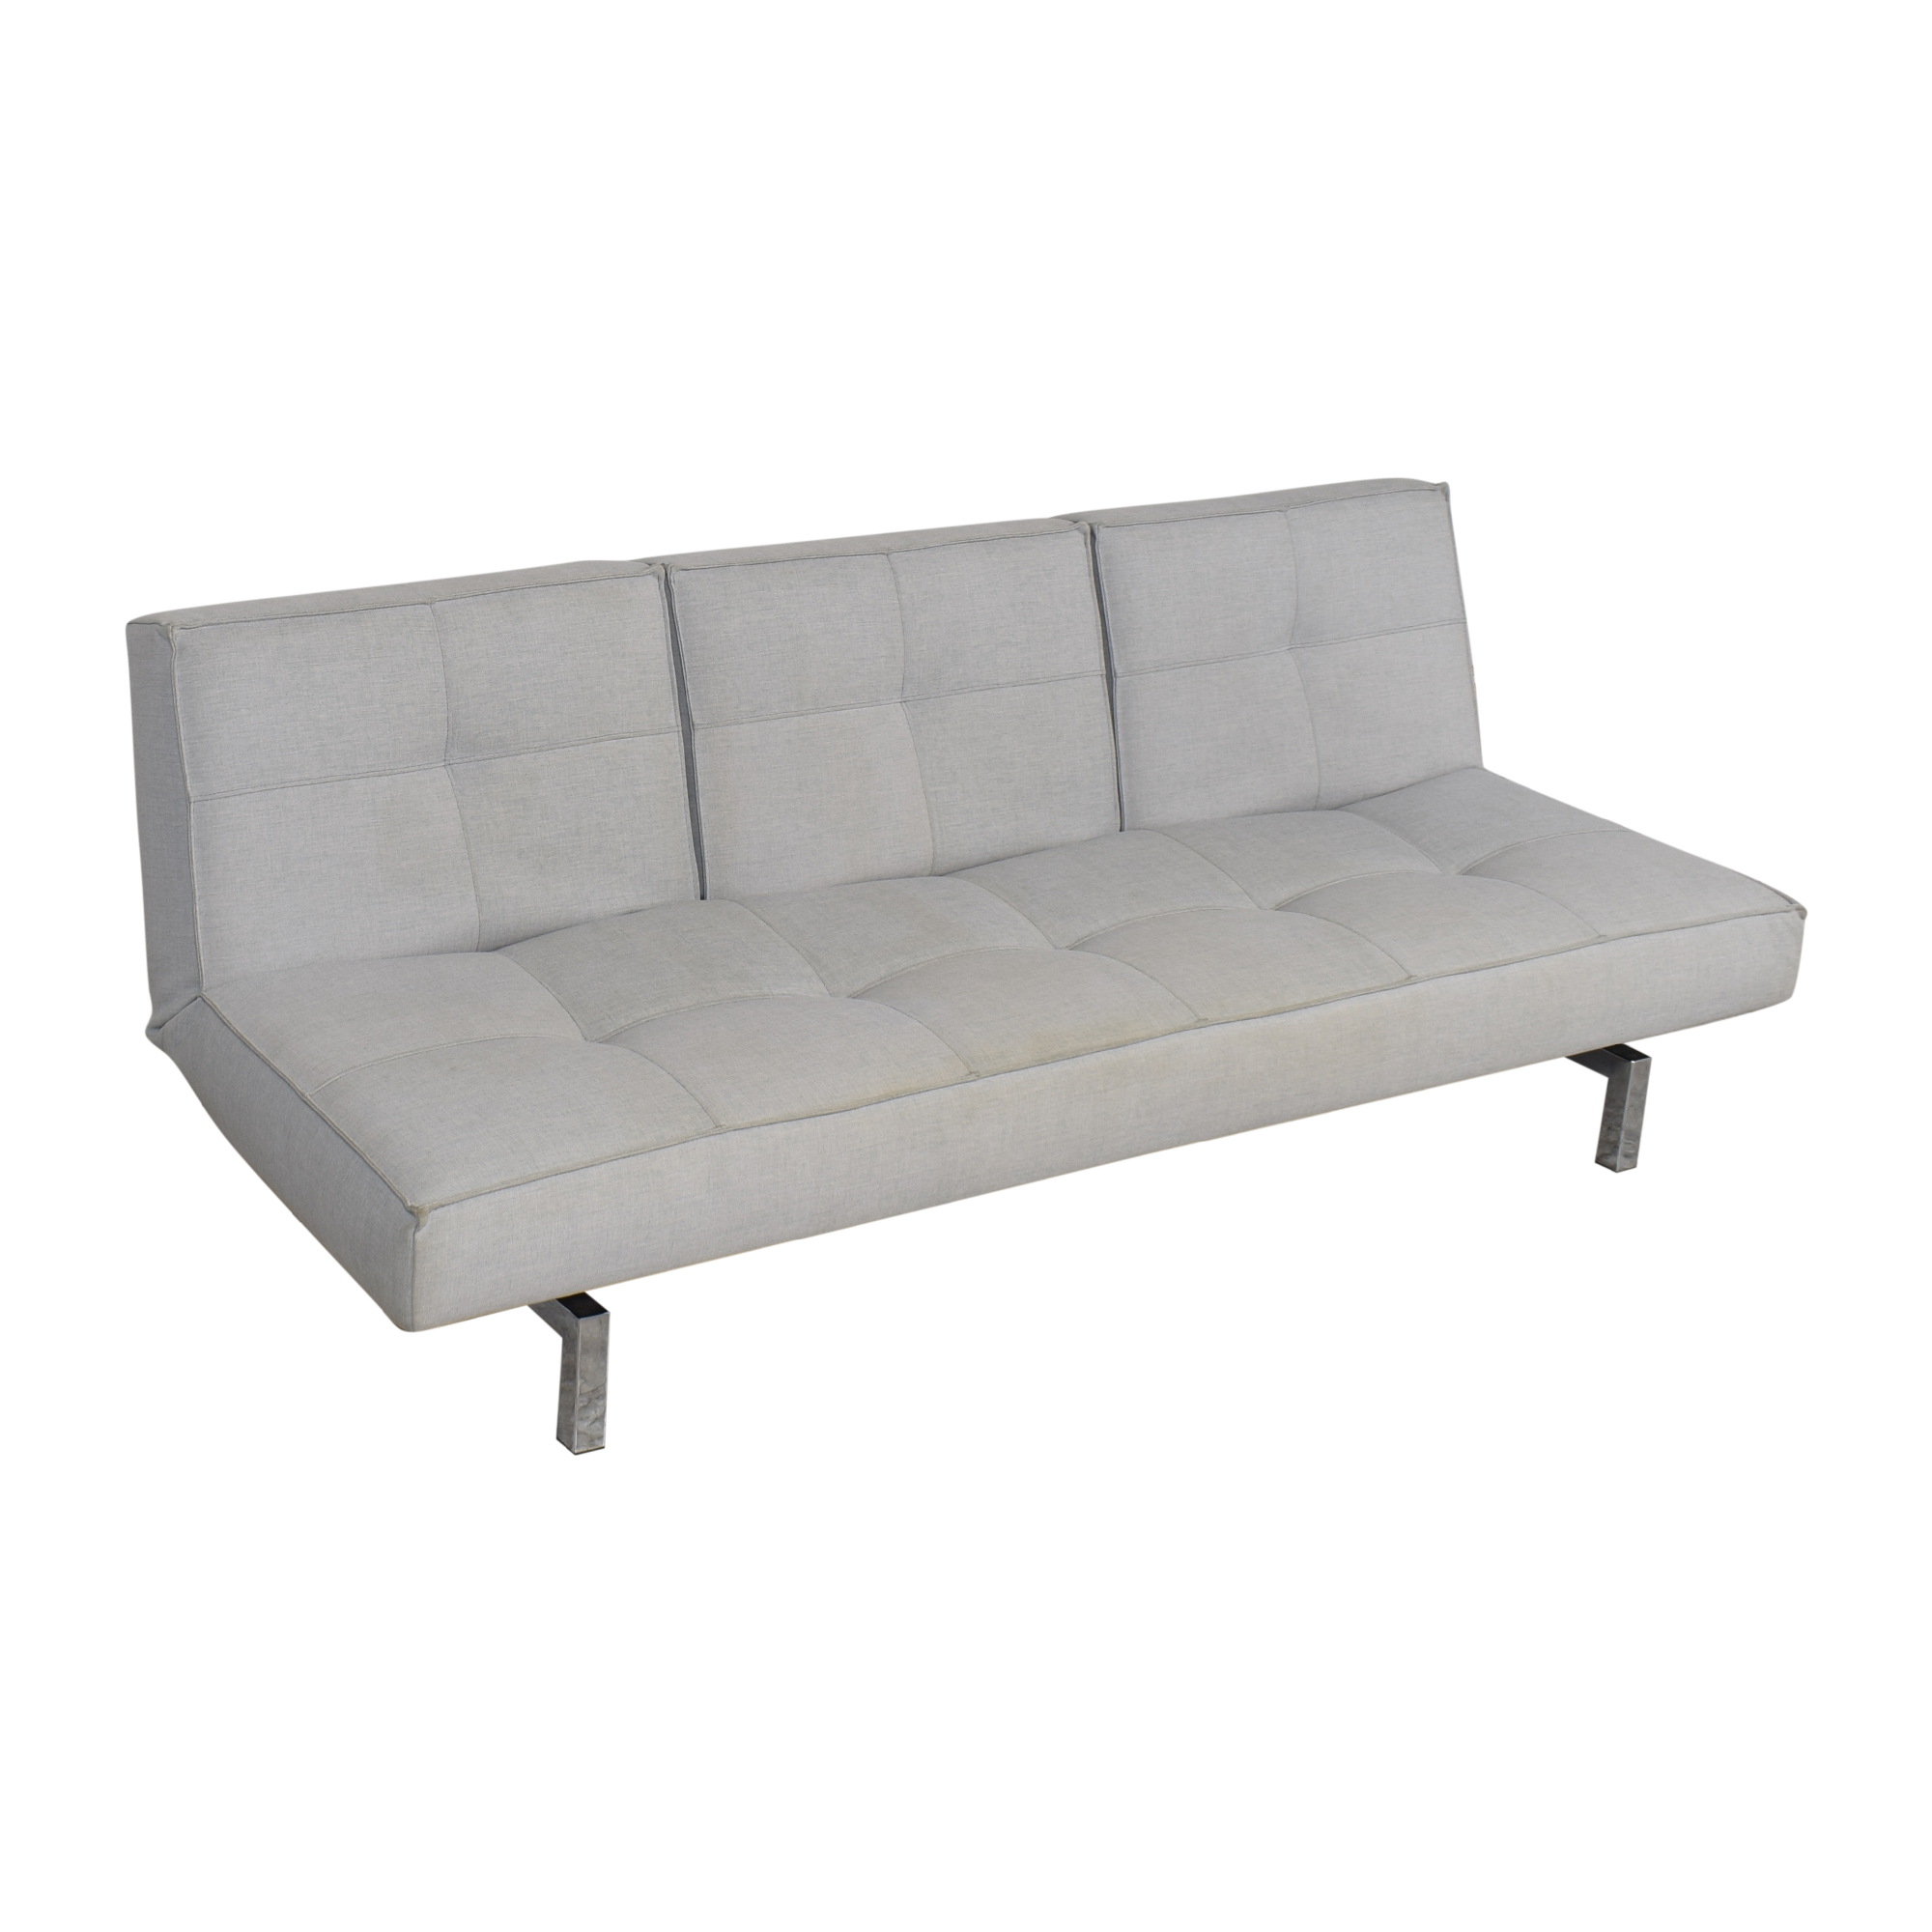 Innovation Living Innovation Living Convertible Tufted Sleeper Sofa on sale